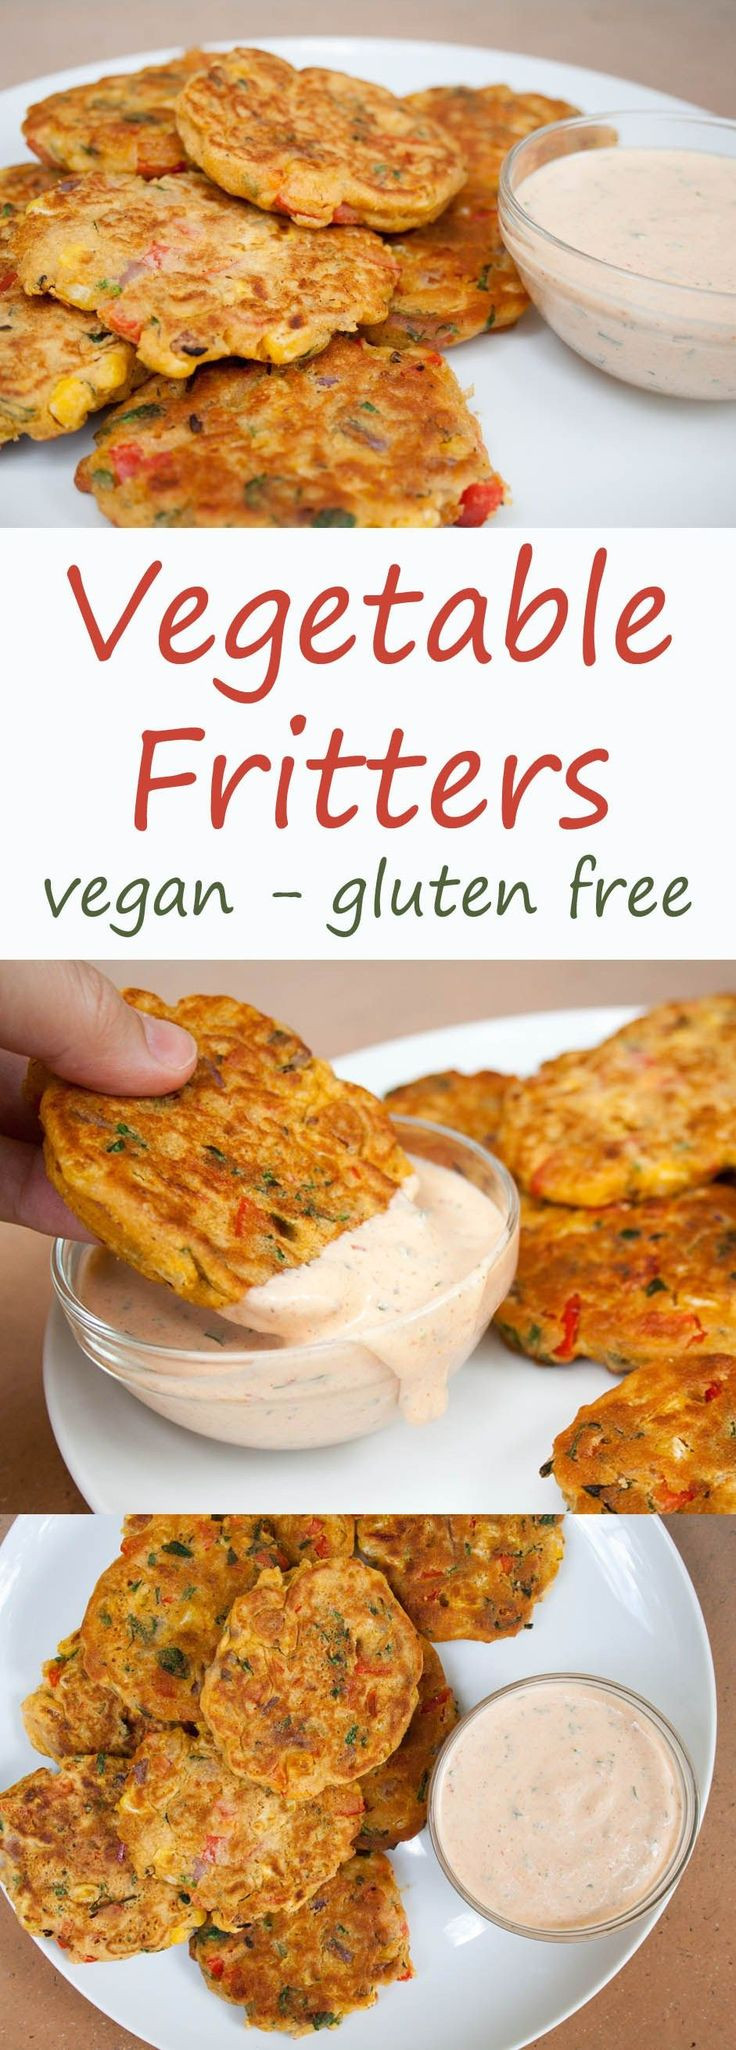 Gluten Free Camping Recipes  Ve able Fritters vegan gluten free These fritters